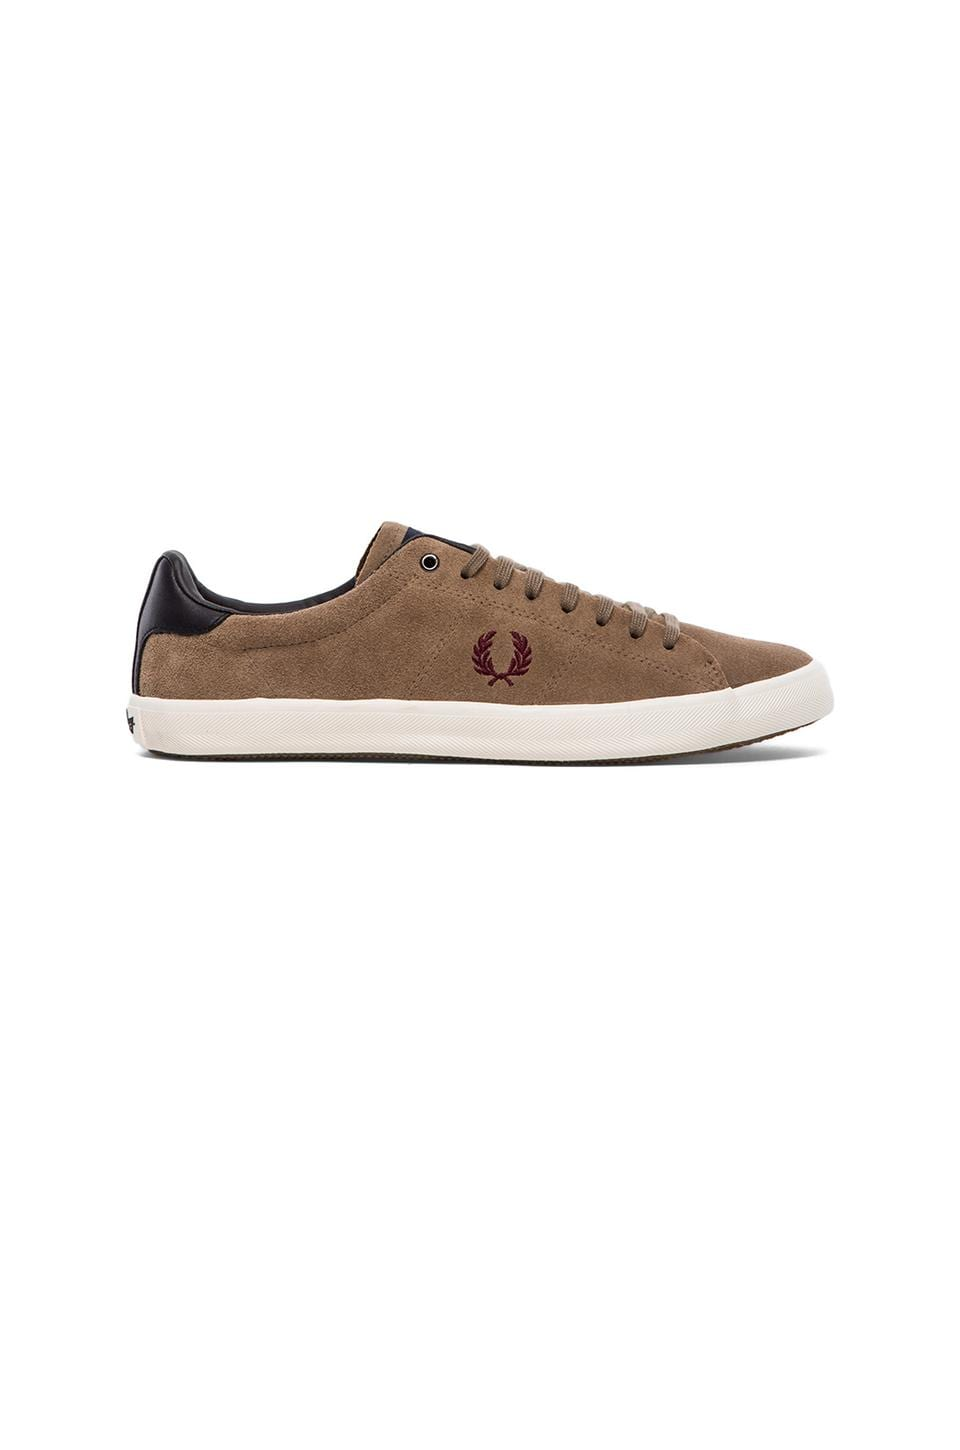 Fred Perry Howells Unlined Suede Sneakers in Driftwood & Maroon